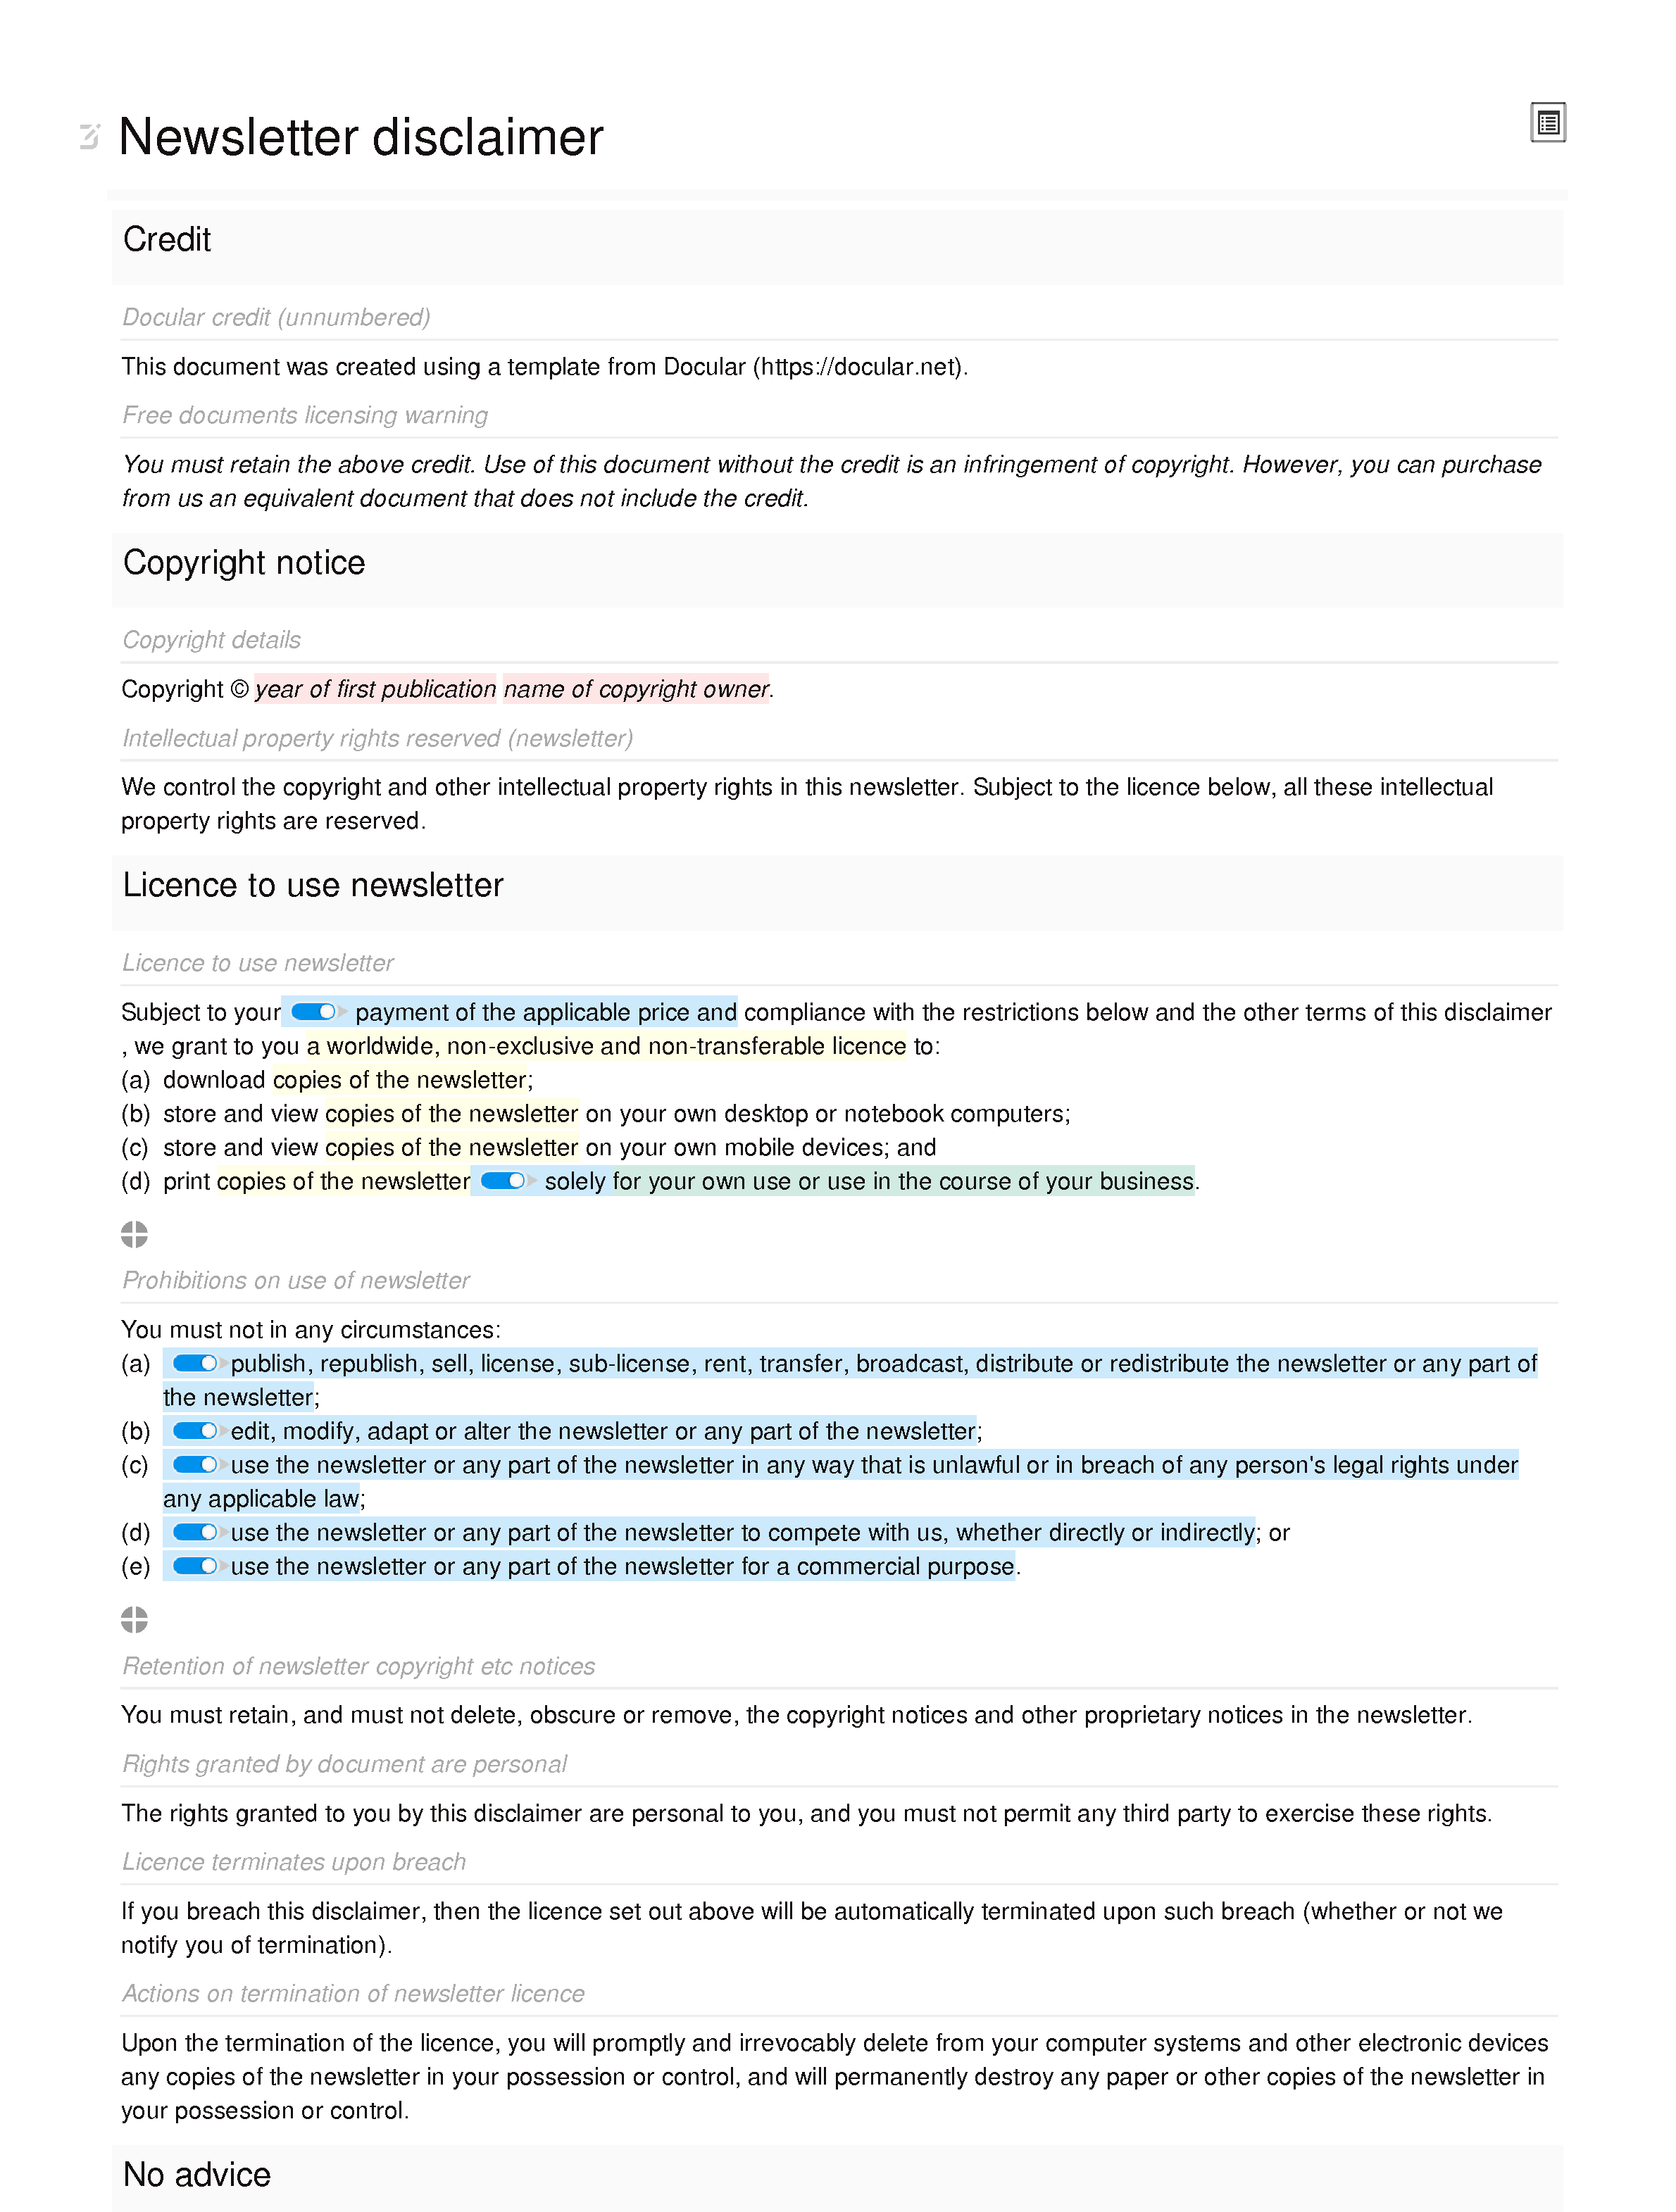 Free newsletter disclaimer document editor preview